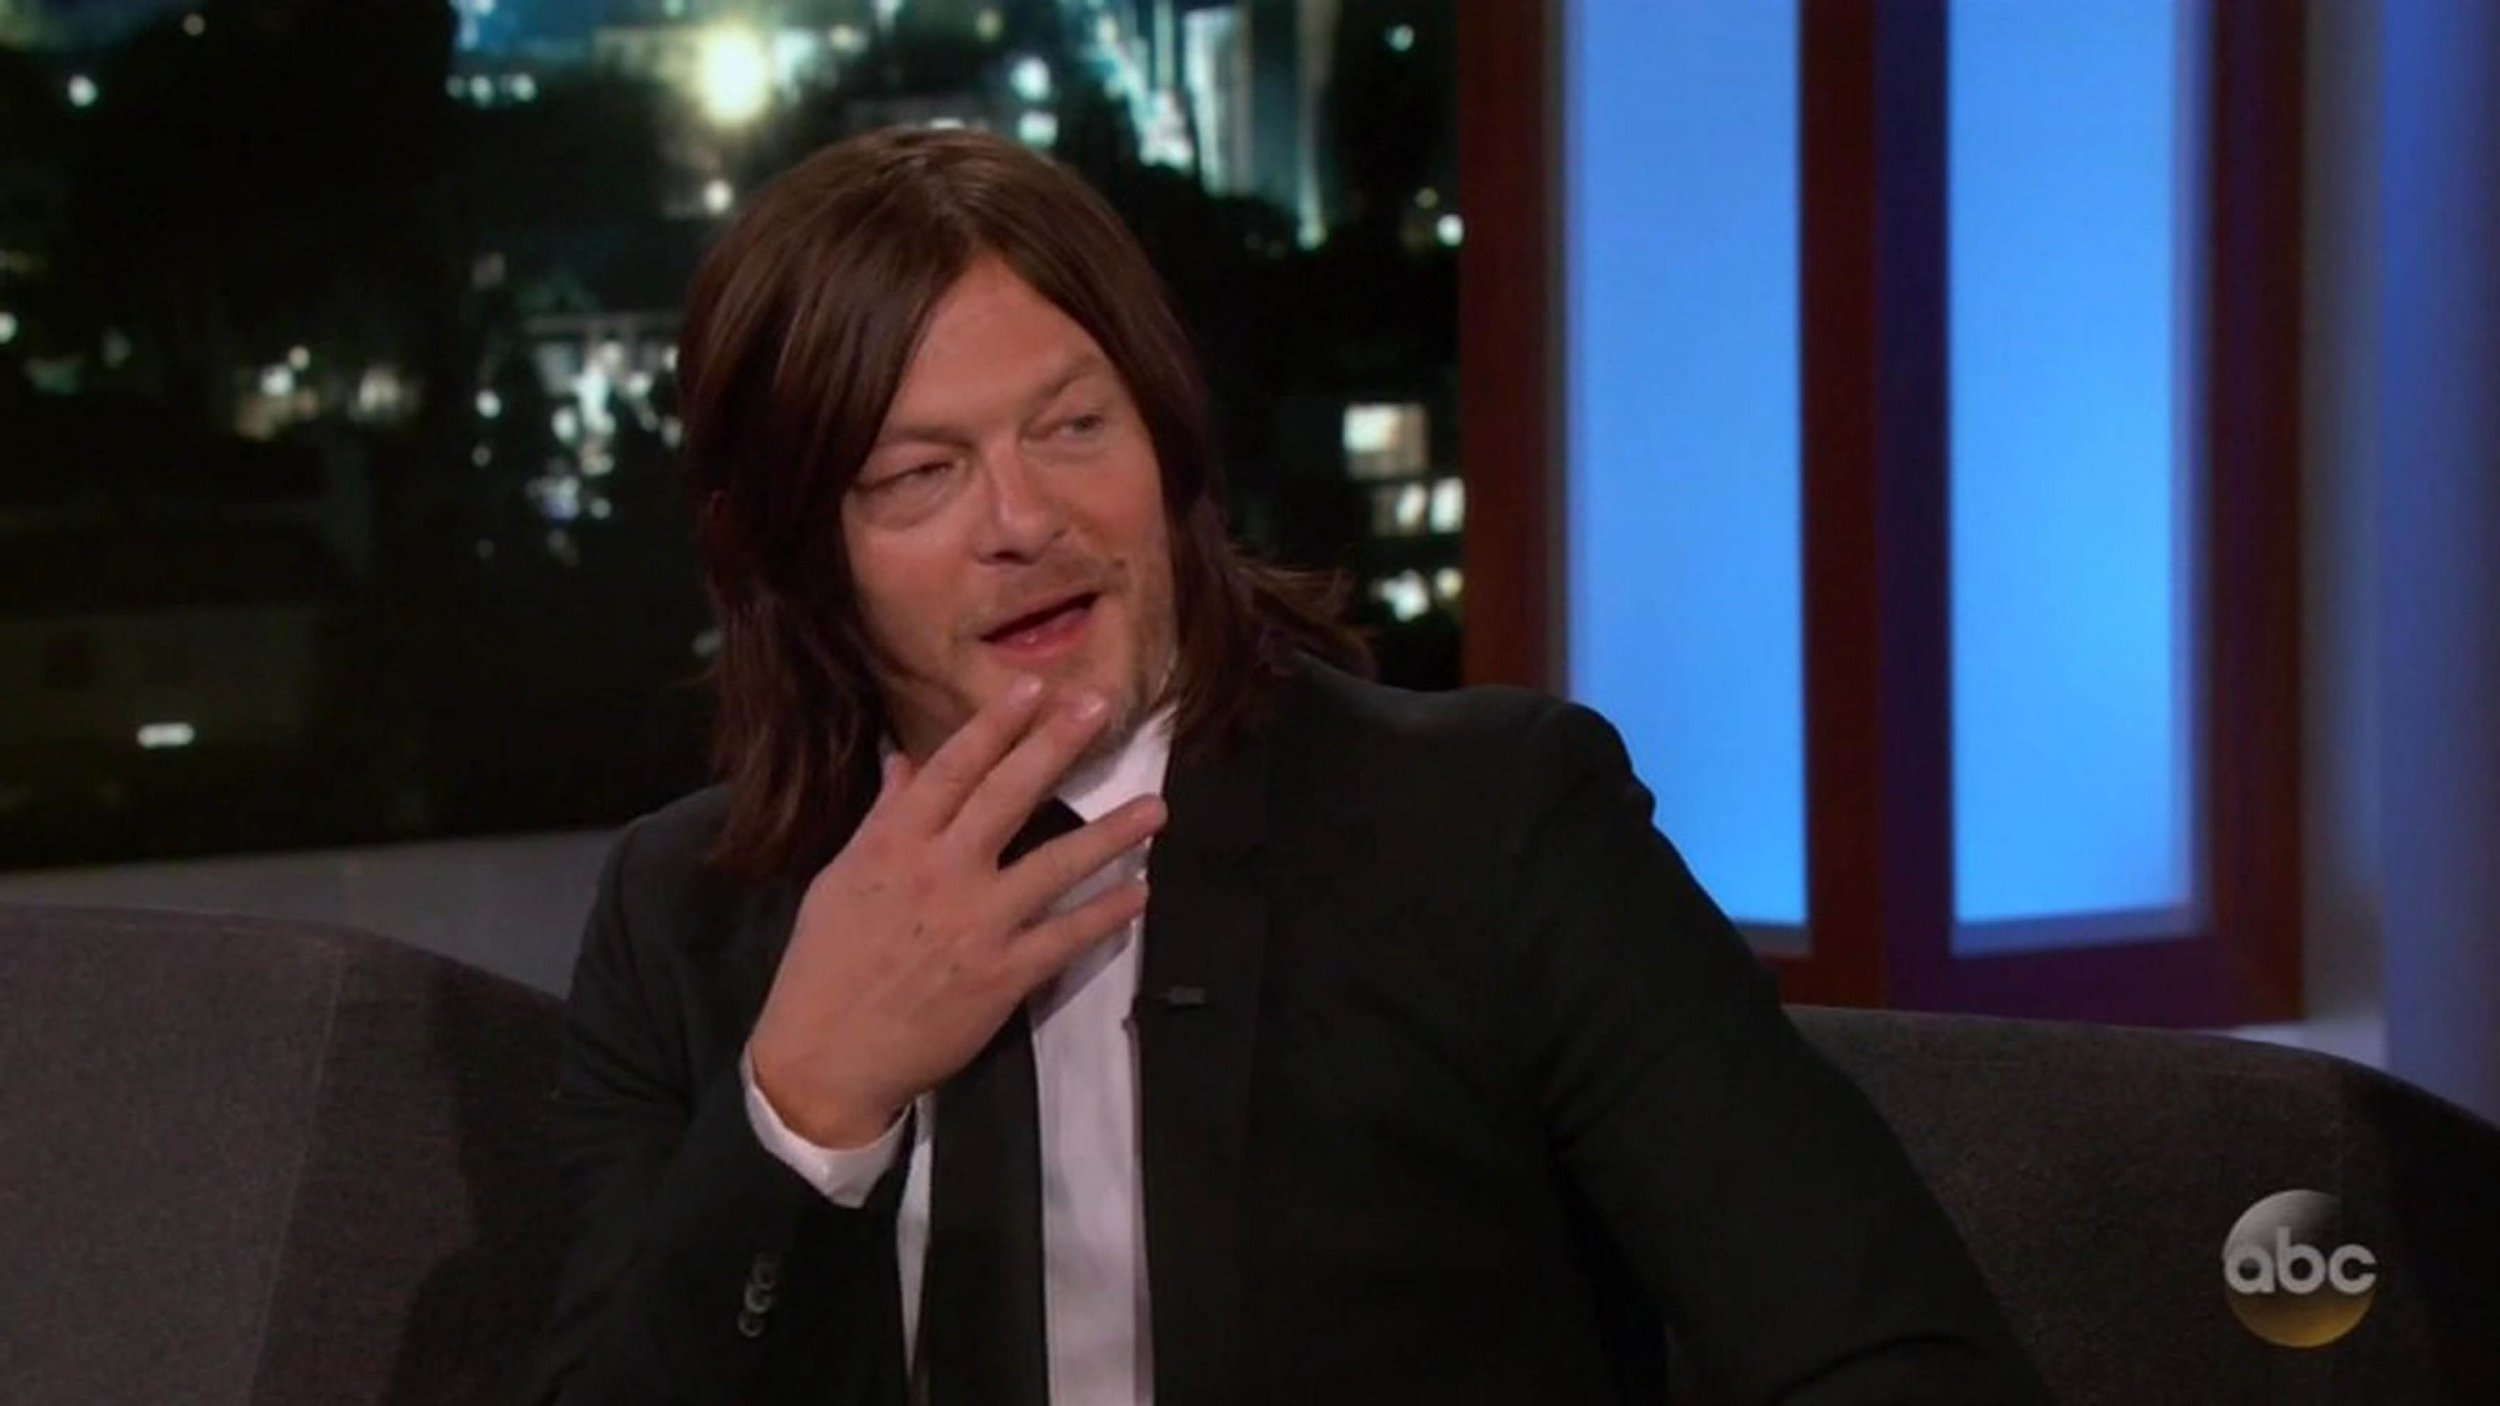 Norman Reedus didn't bother with a penis sock on The Walking Dead and just went 'butt naked' instead